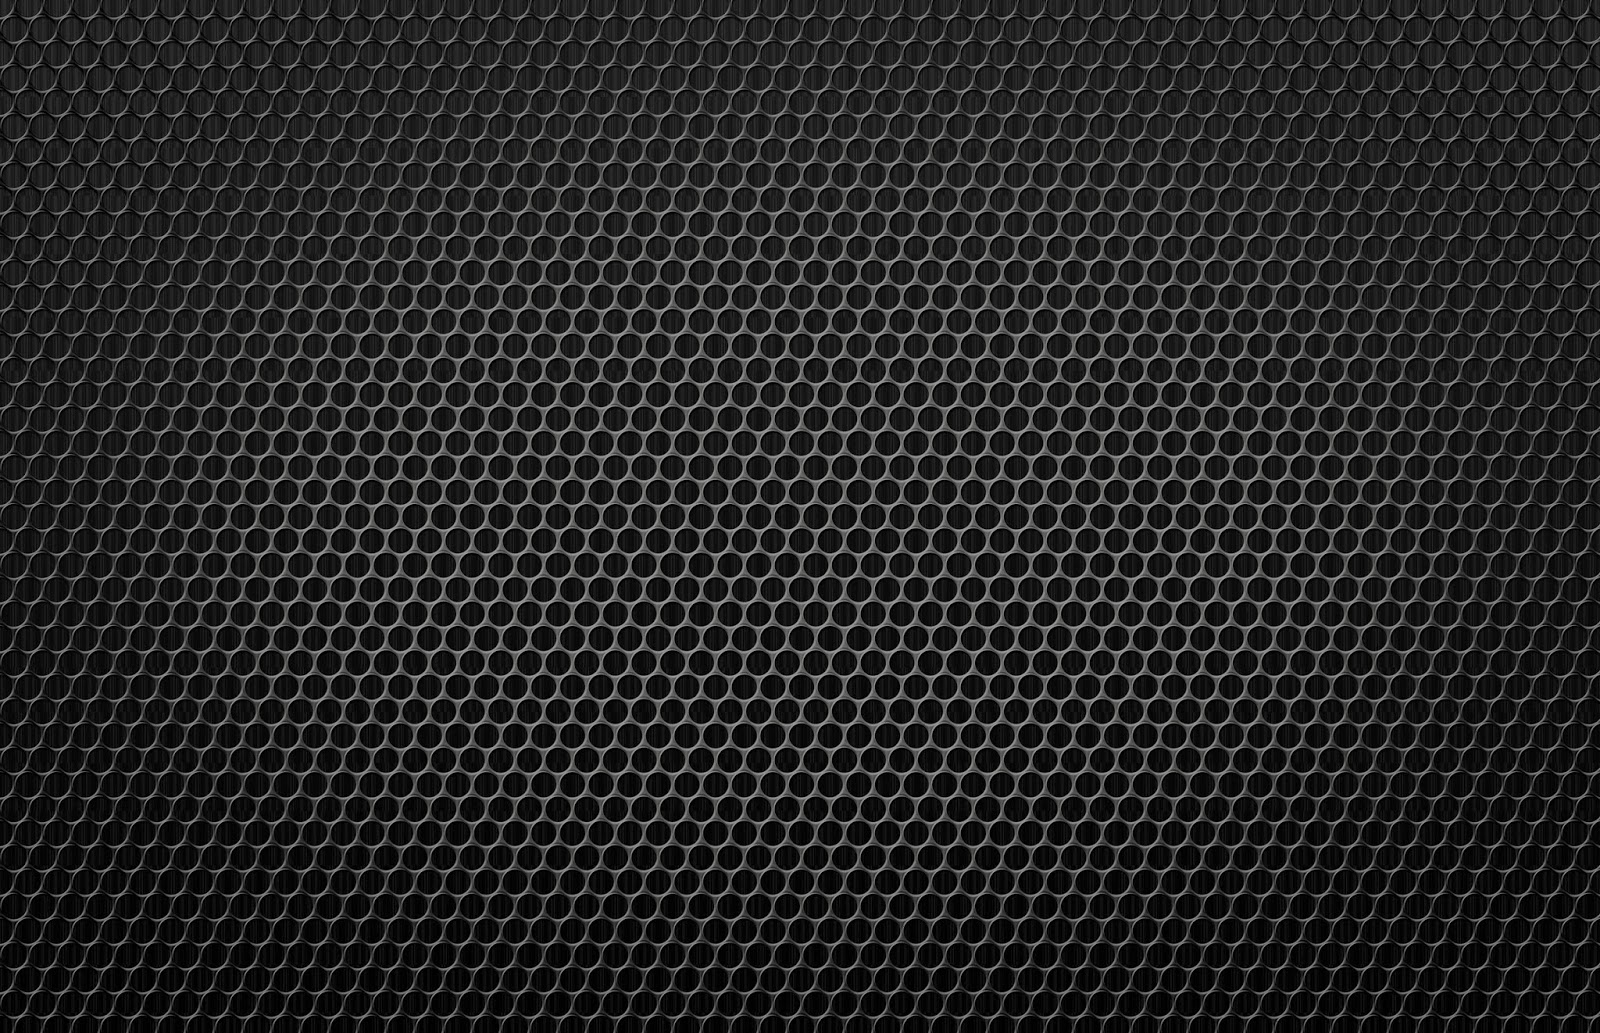 Dark textured background design patterns website images for Black wallpaper with design